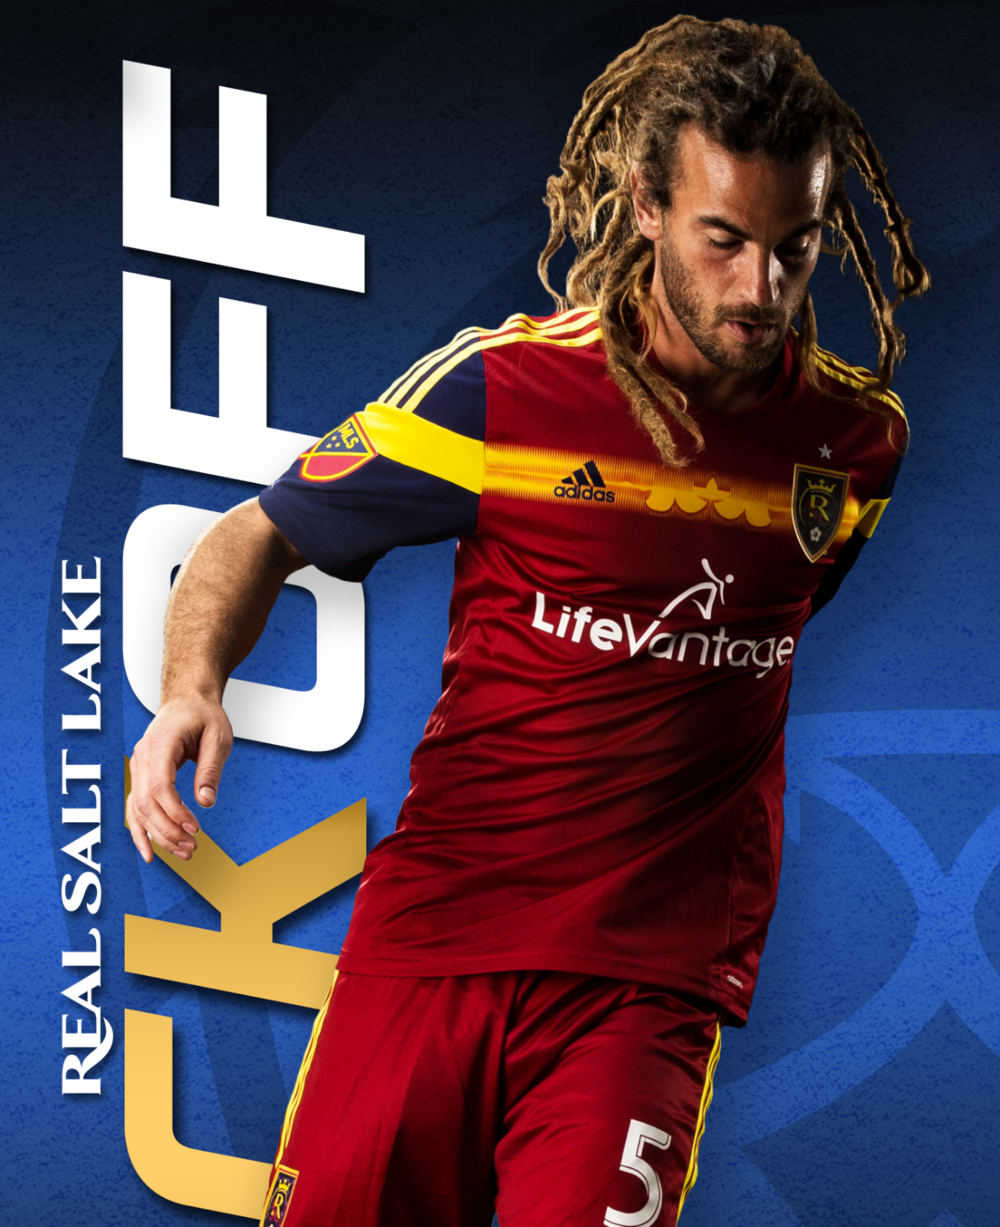 REAL SALT LAKE VIDEO: INTRODUCTION VIDEO FOR PLAYER INTRODUCTIONS PHOTO: PLAYER HEAD SHOTS FOR MARKETING AND PRINT ASSETS